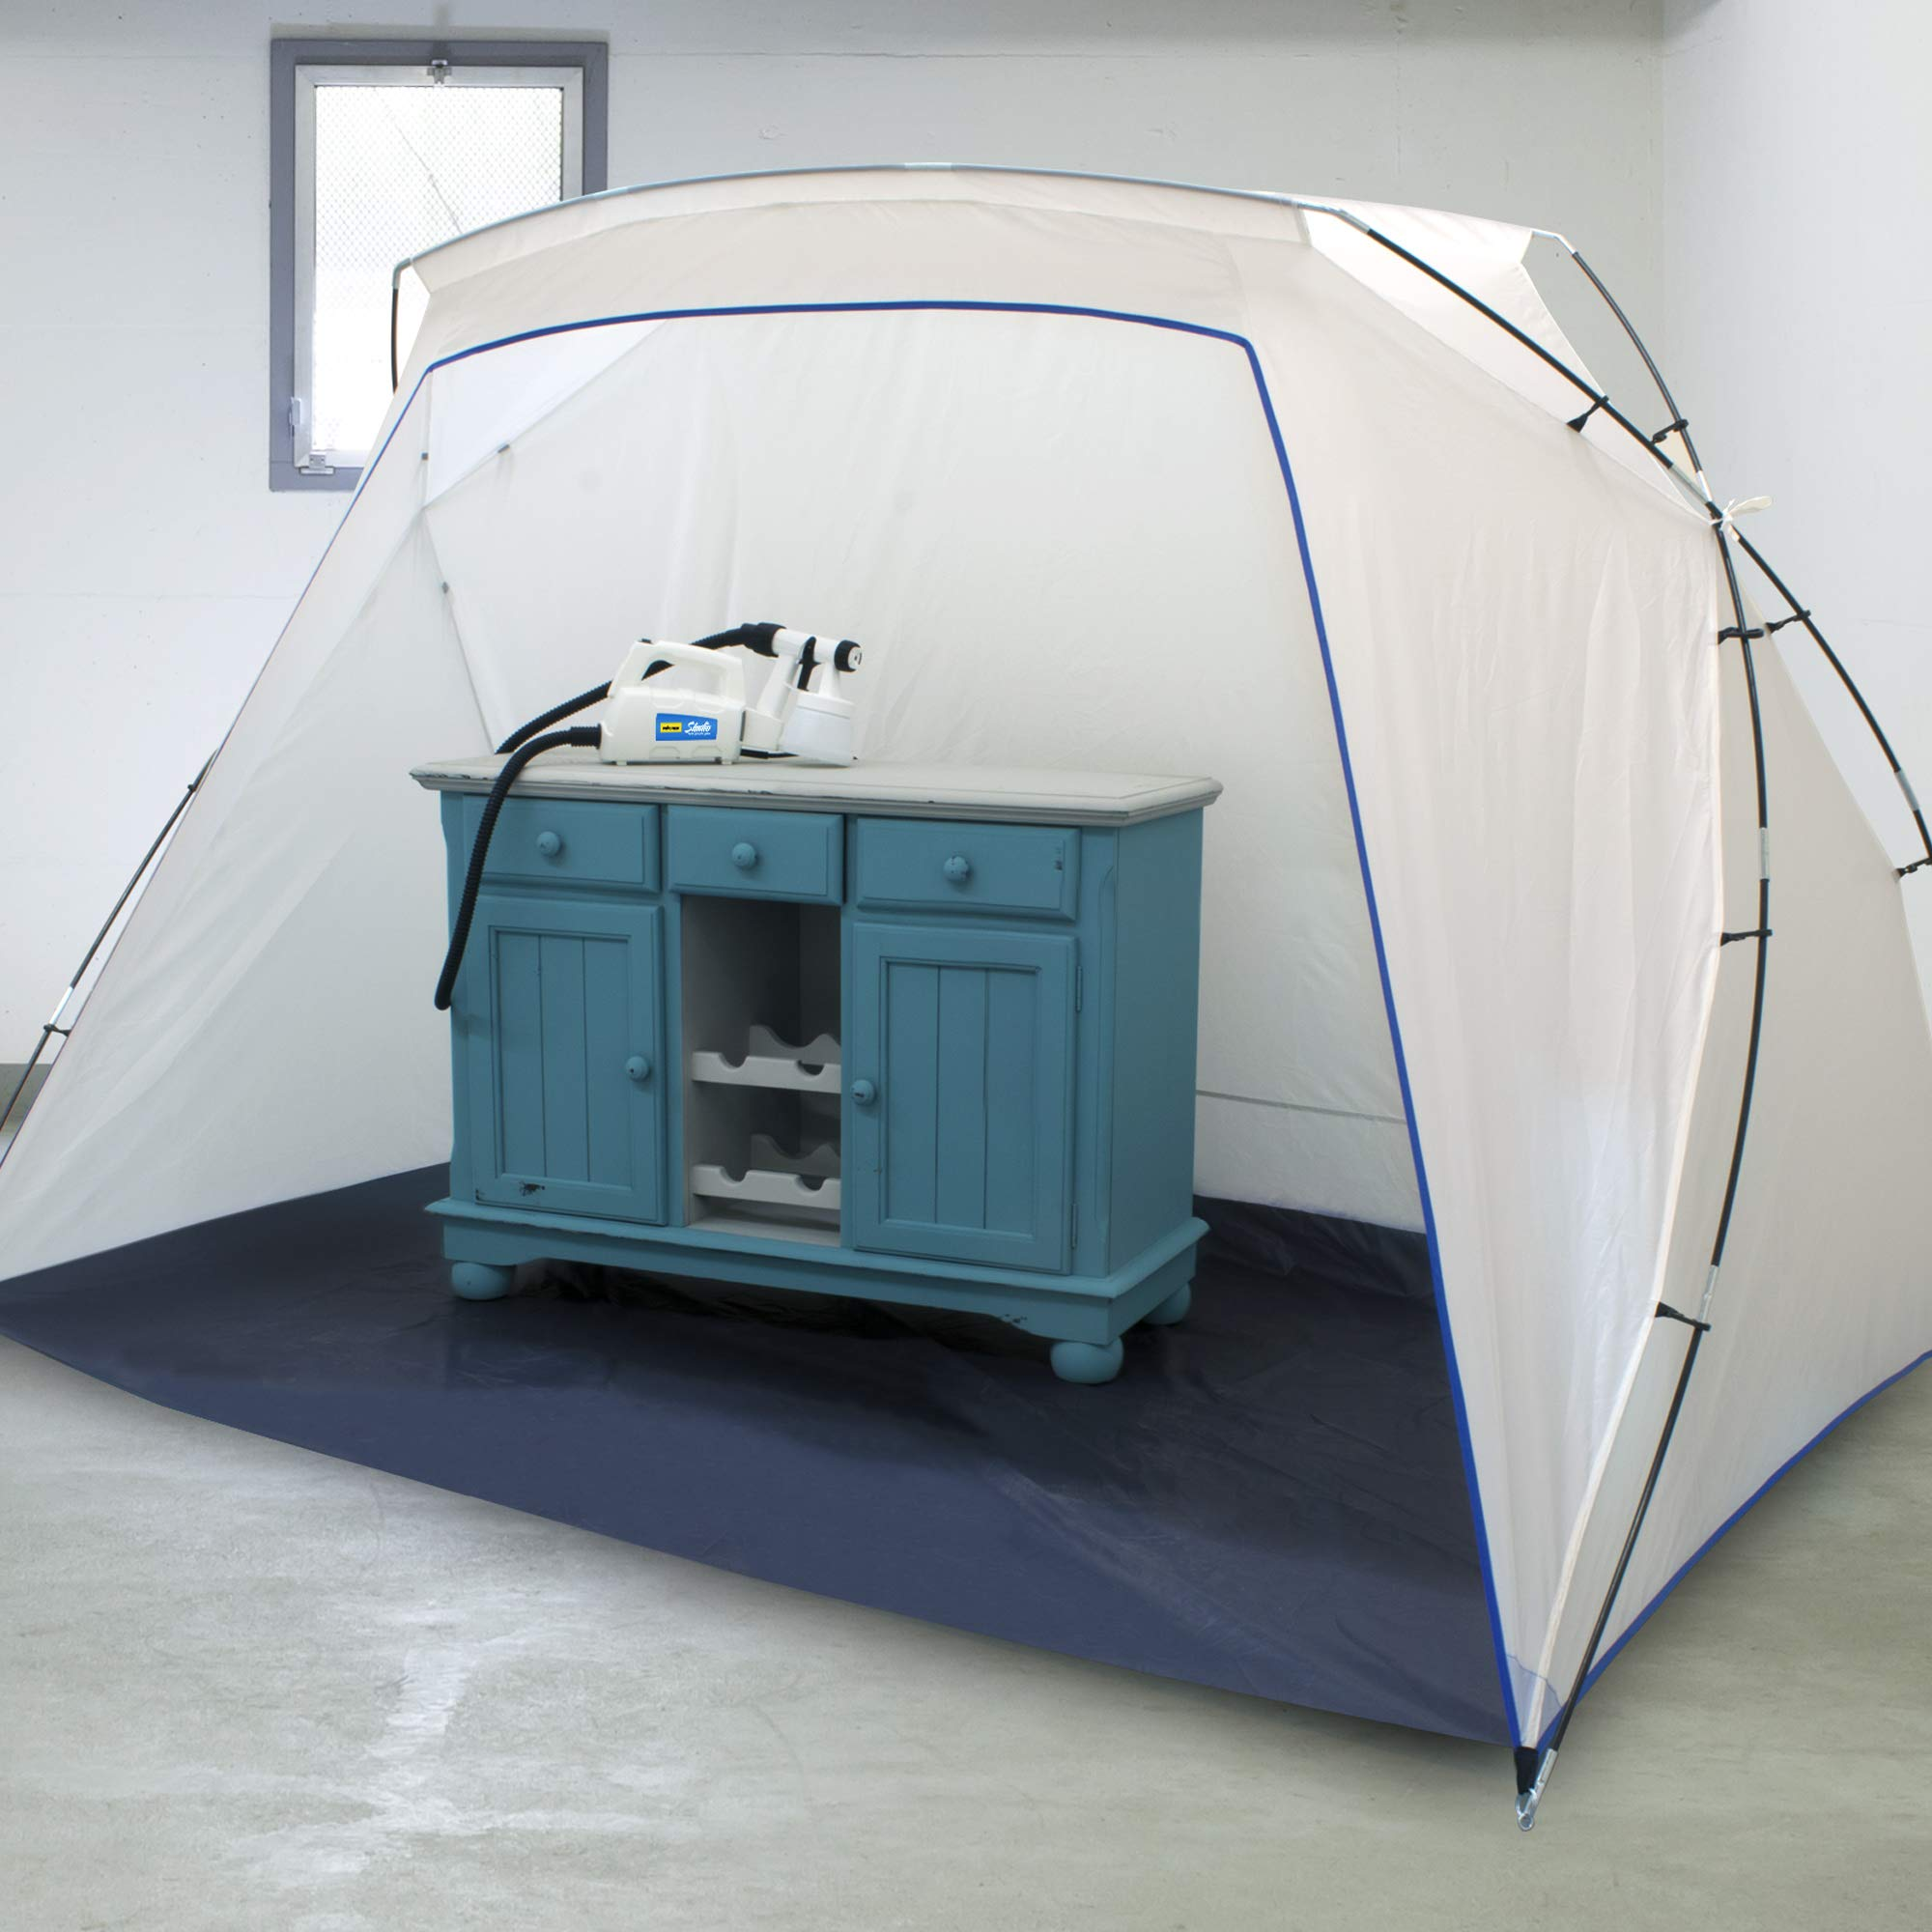 Wagner 0529055 Studio Spray Tent with Built-In Floor by Wagner Spraytech (Image #2)